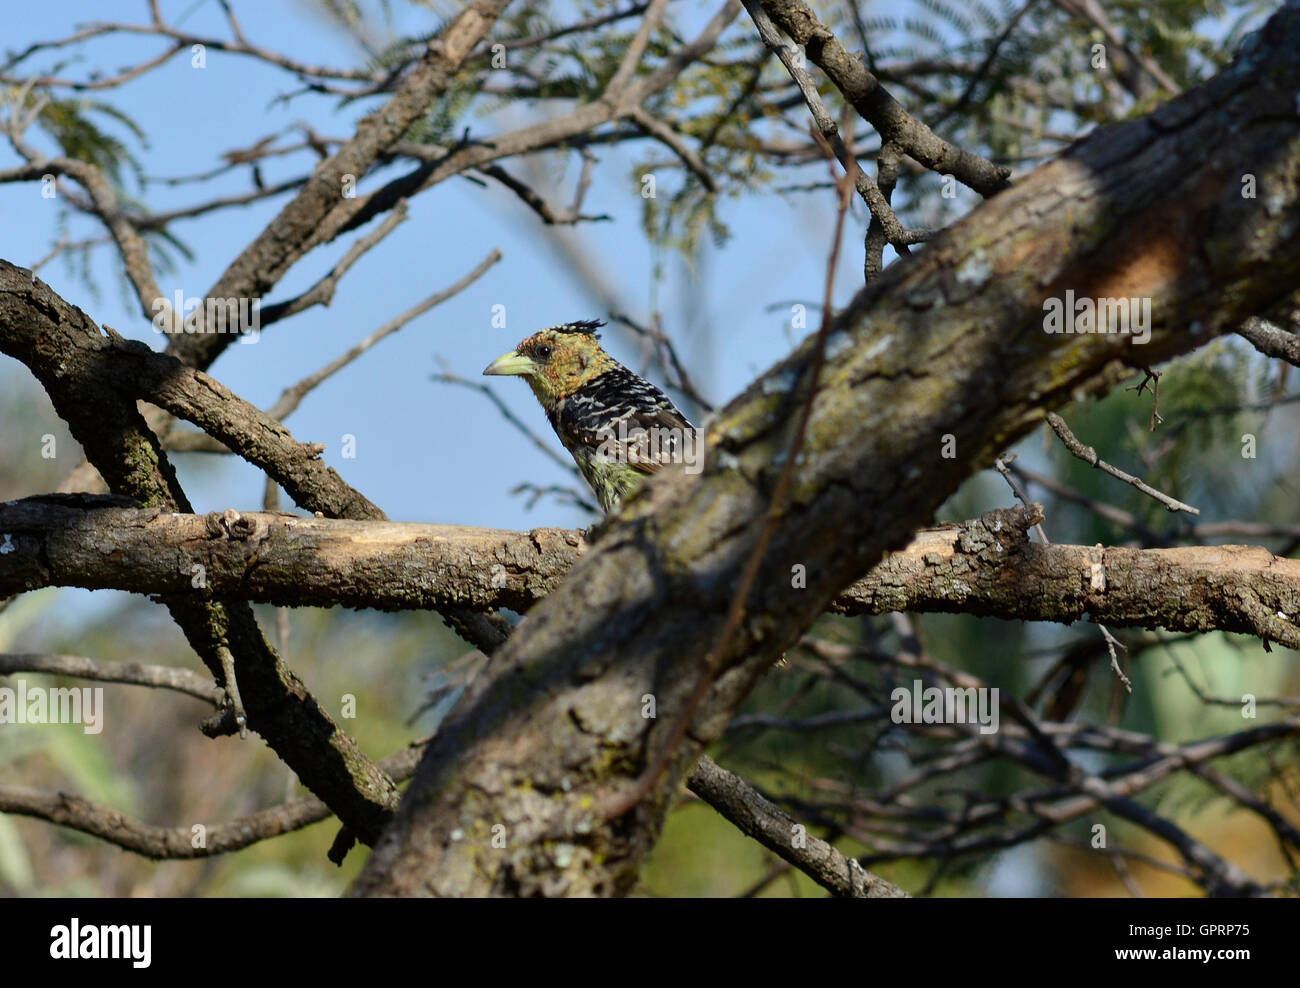 Crested barbet (Trachyphonus vaillantii) female bird. Songbirds singing in duets. Fruit eating bird colorful yellow - Stock Image